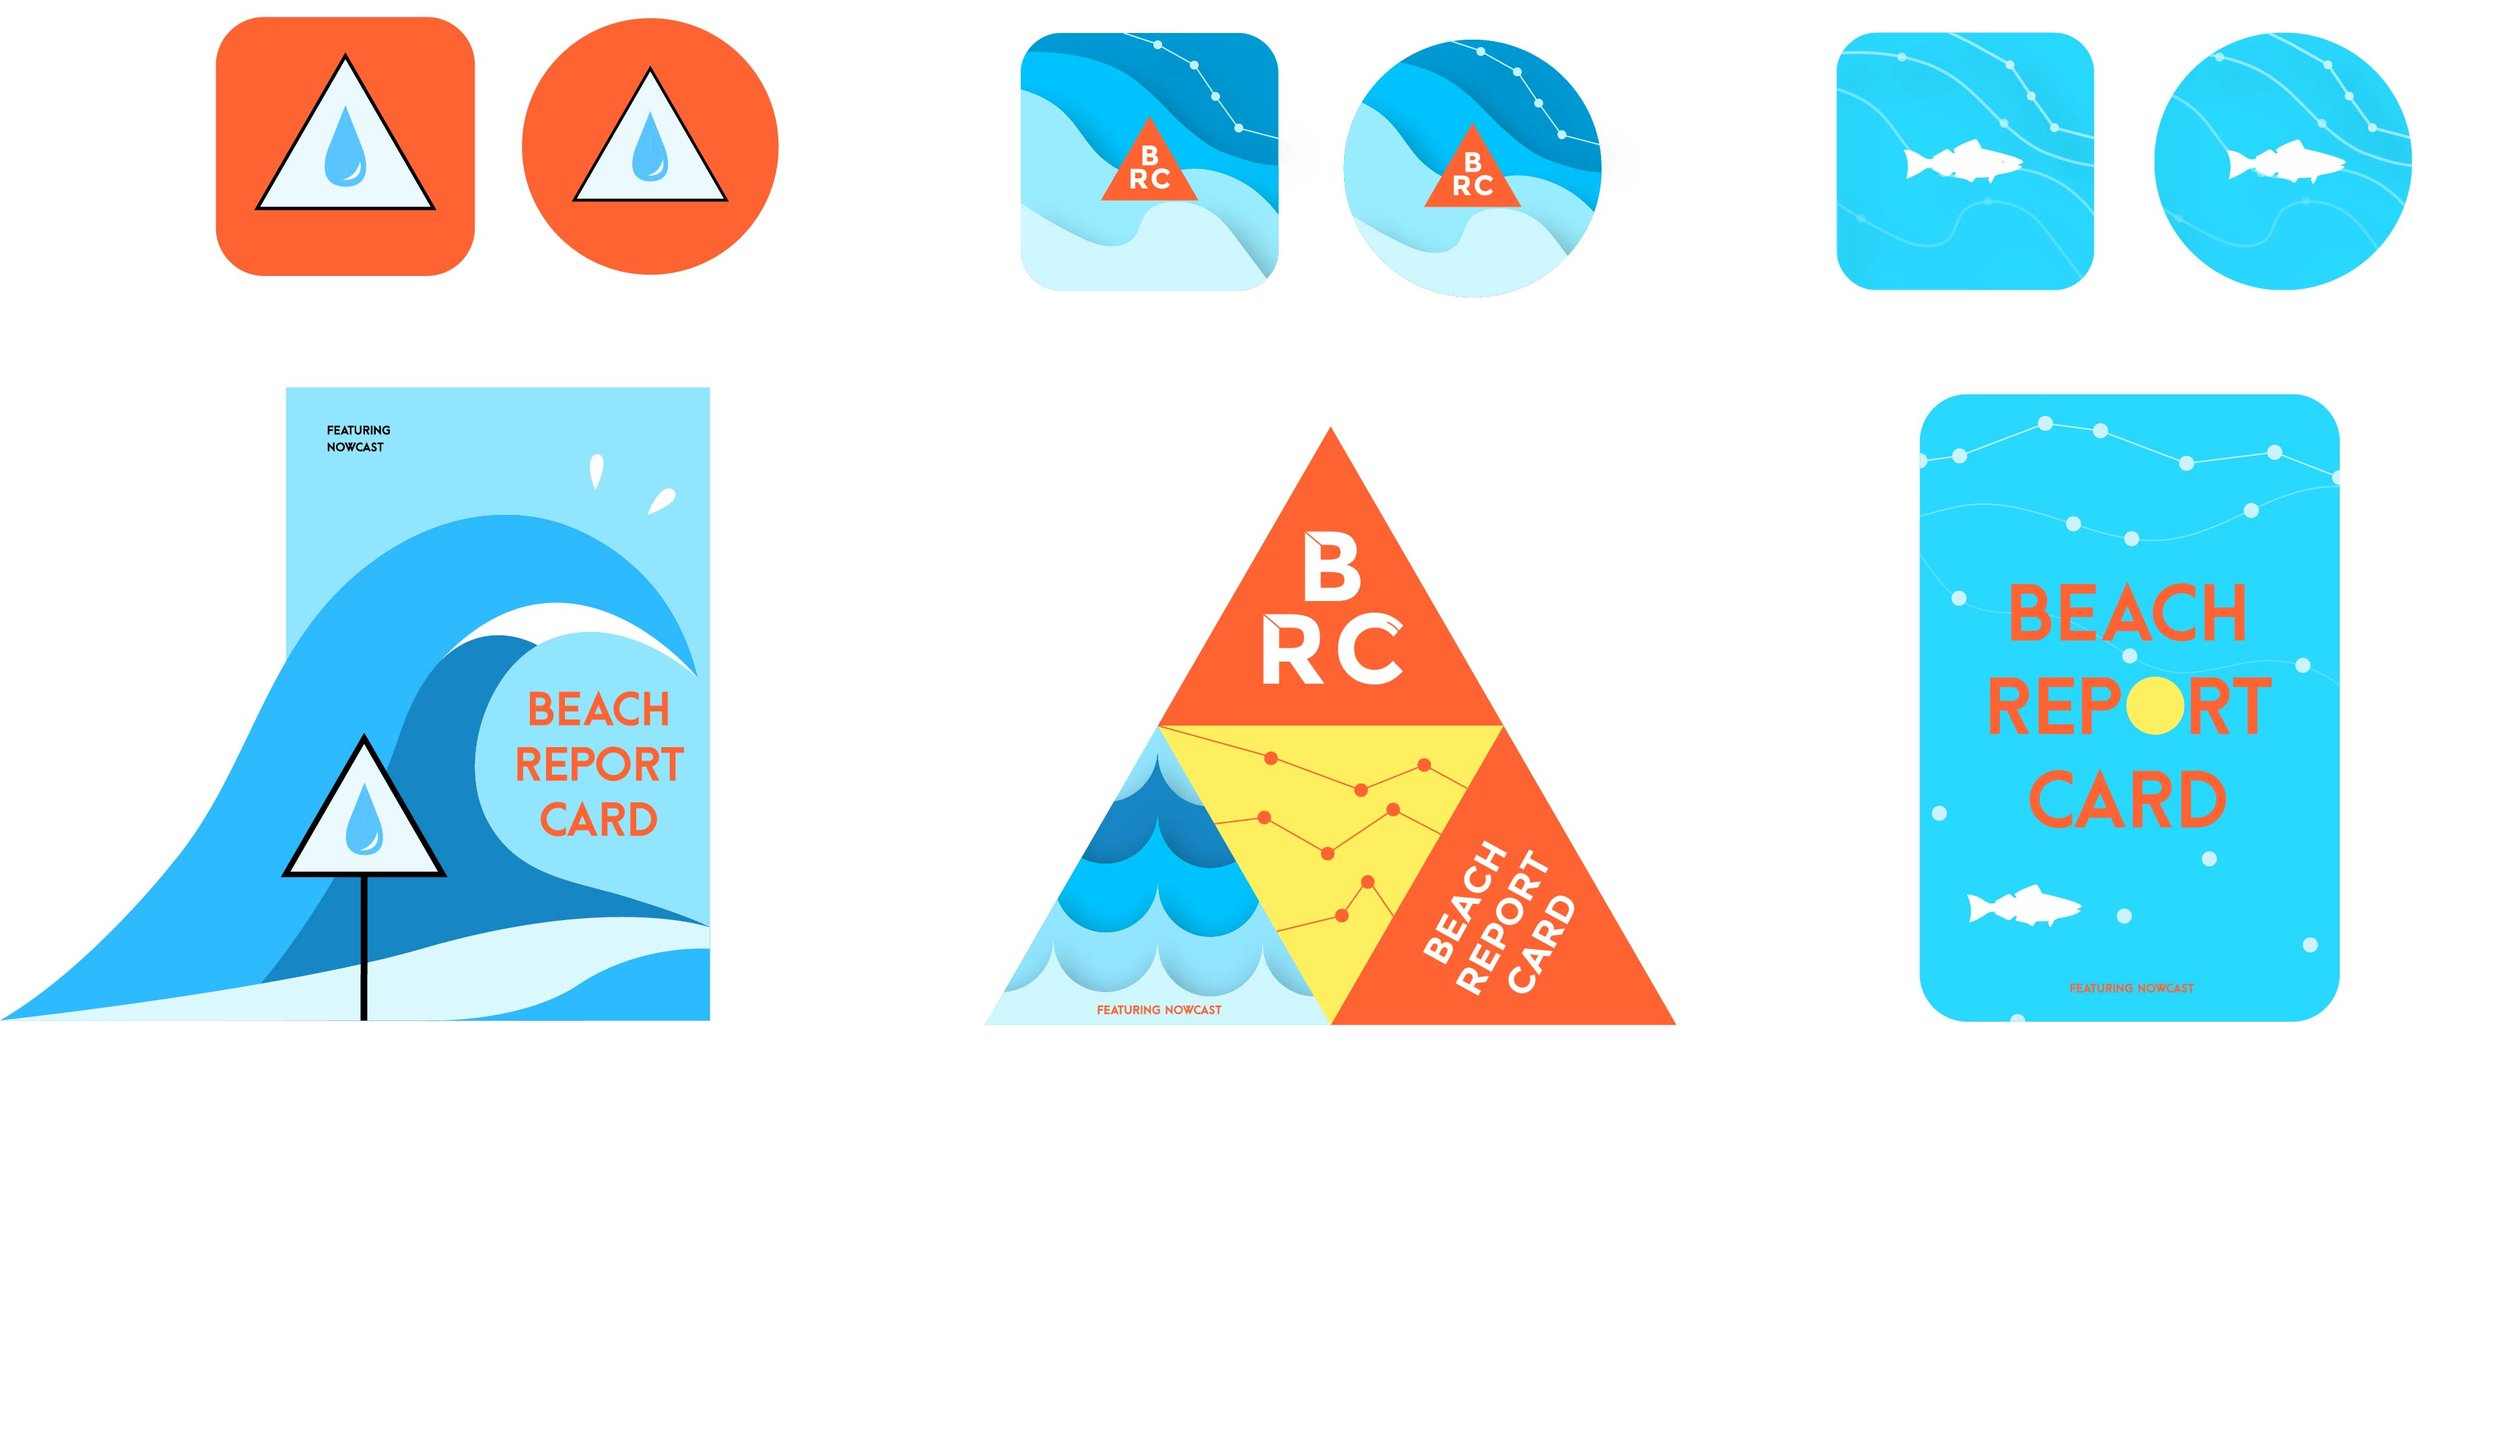 Heal The Bay - App Designs for the 'Beach Report Card' Program